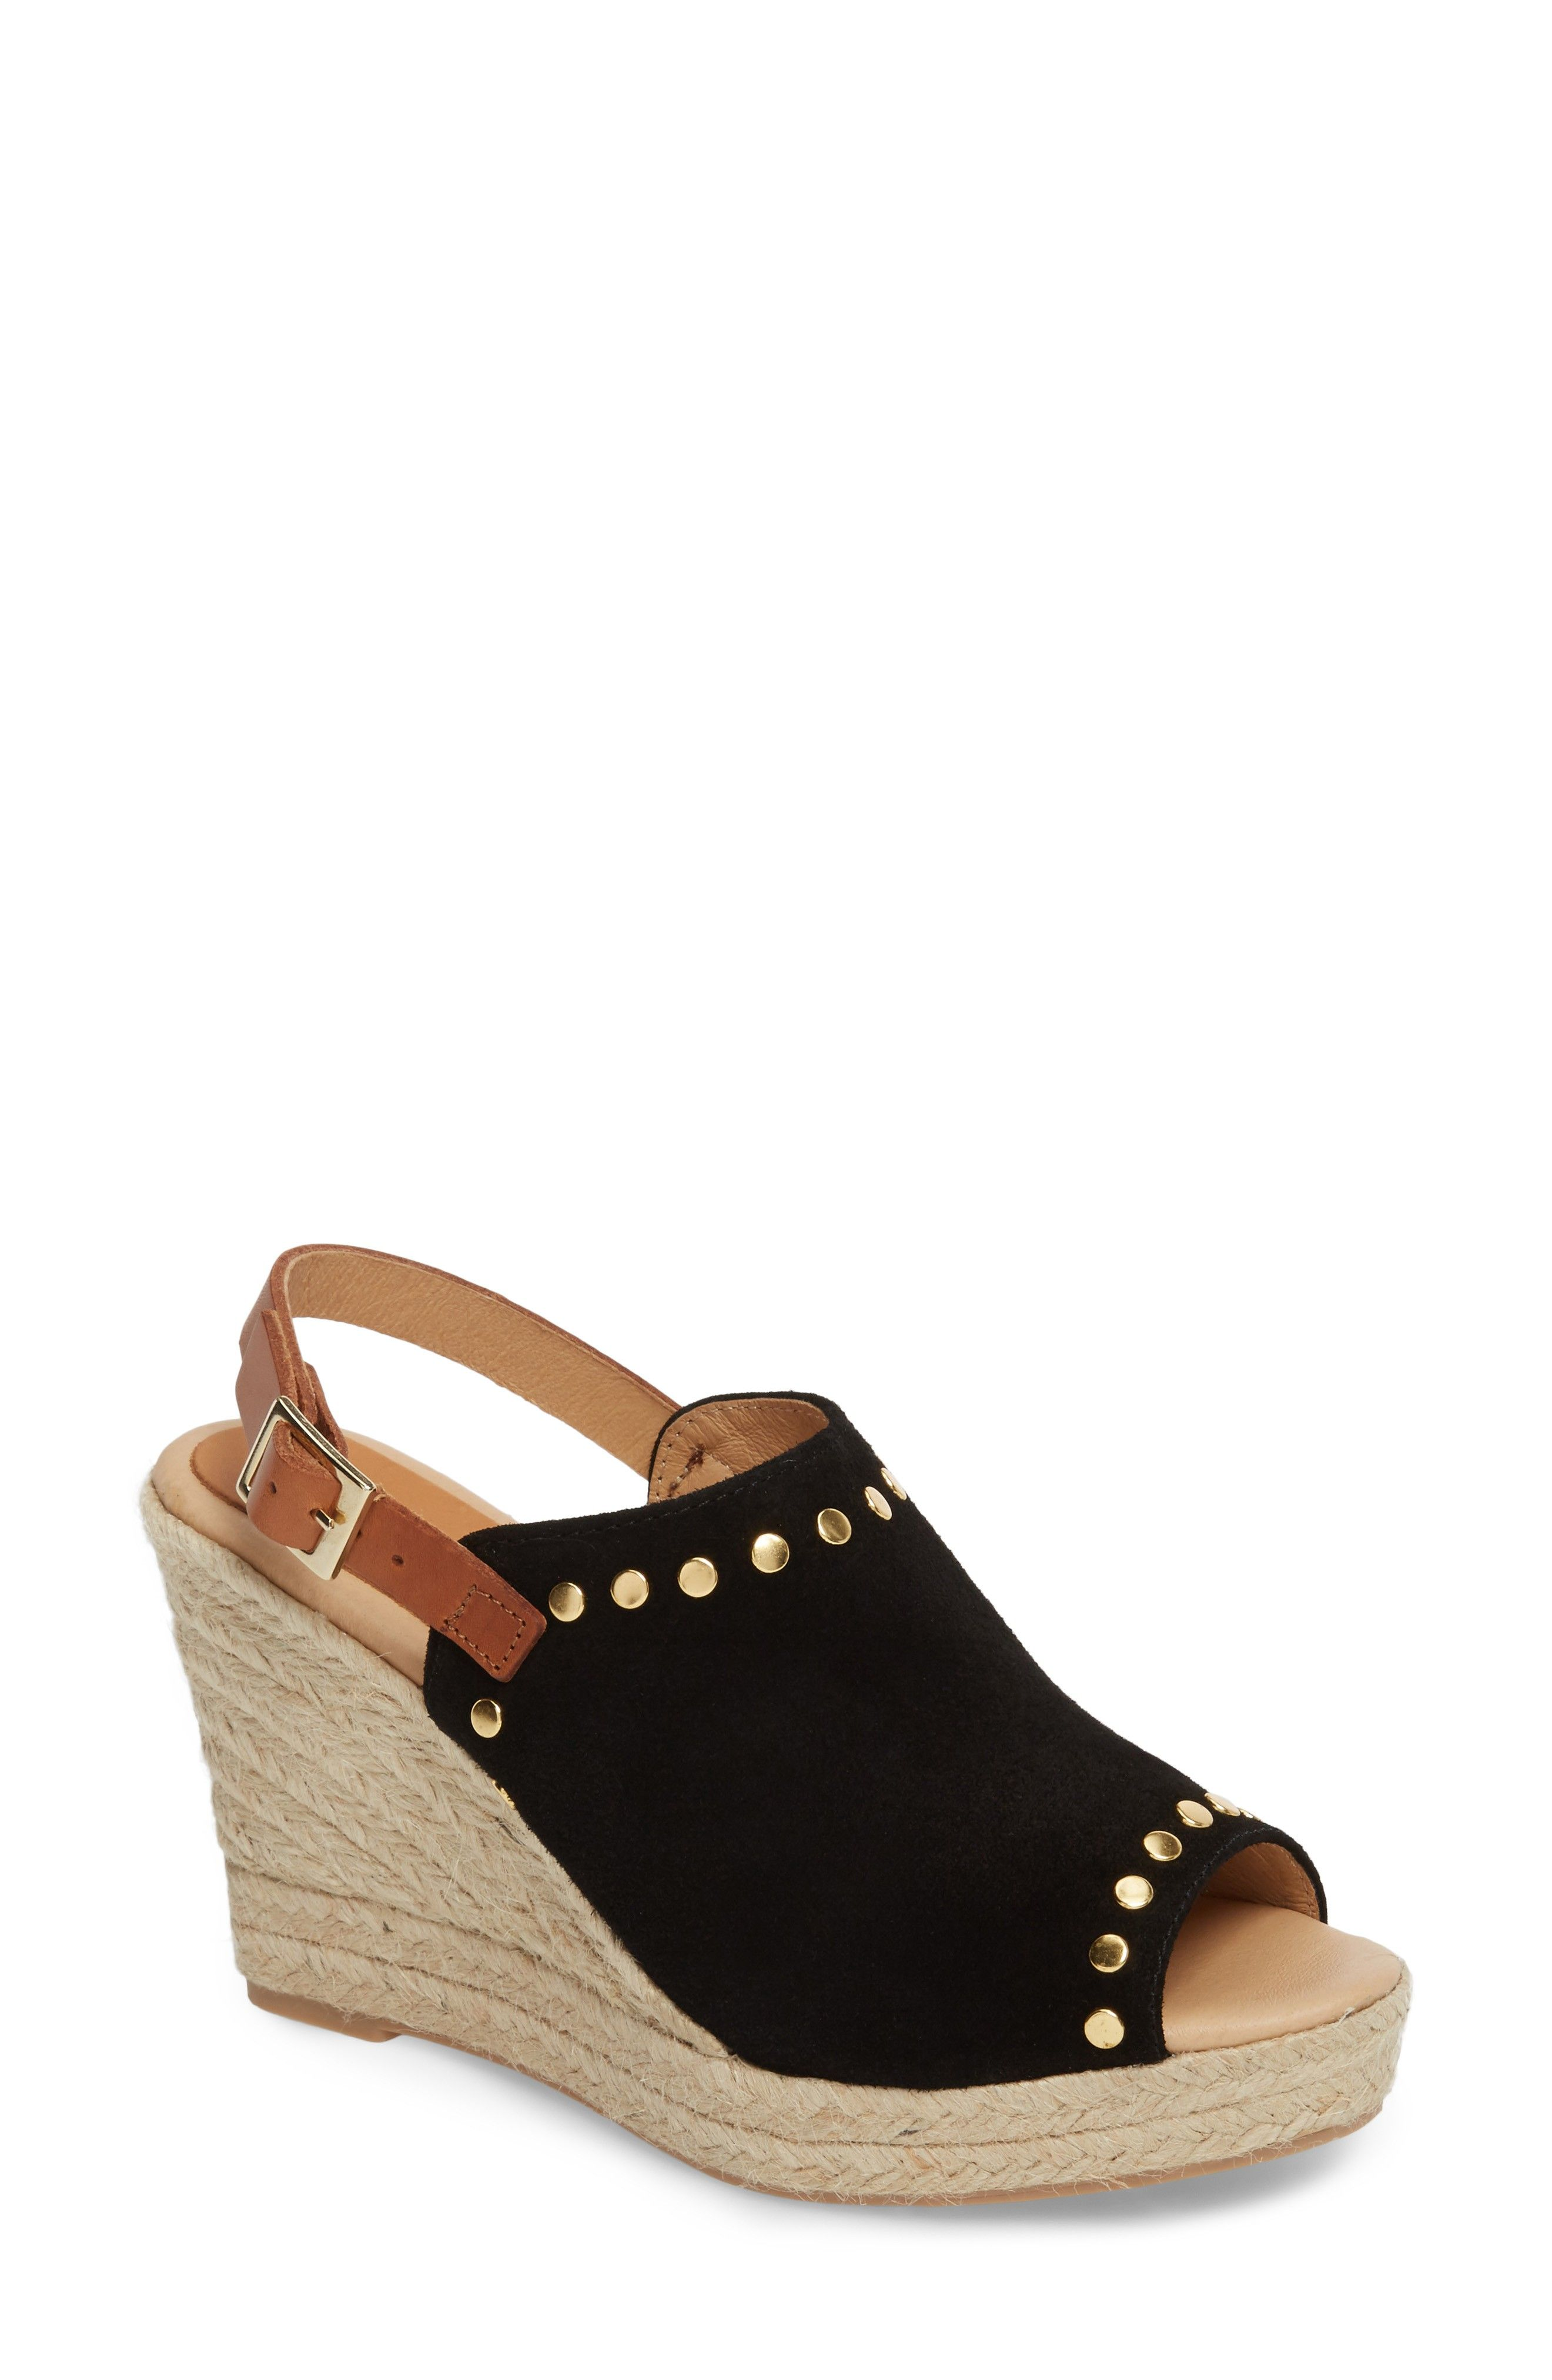 PATRICIA GREEN | Rockstar Espadrille Wedge Sandal #Shoes #Sandals #Slides #PATRICIA  GREEN